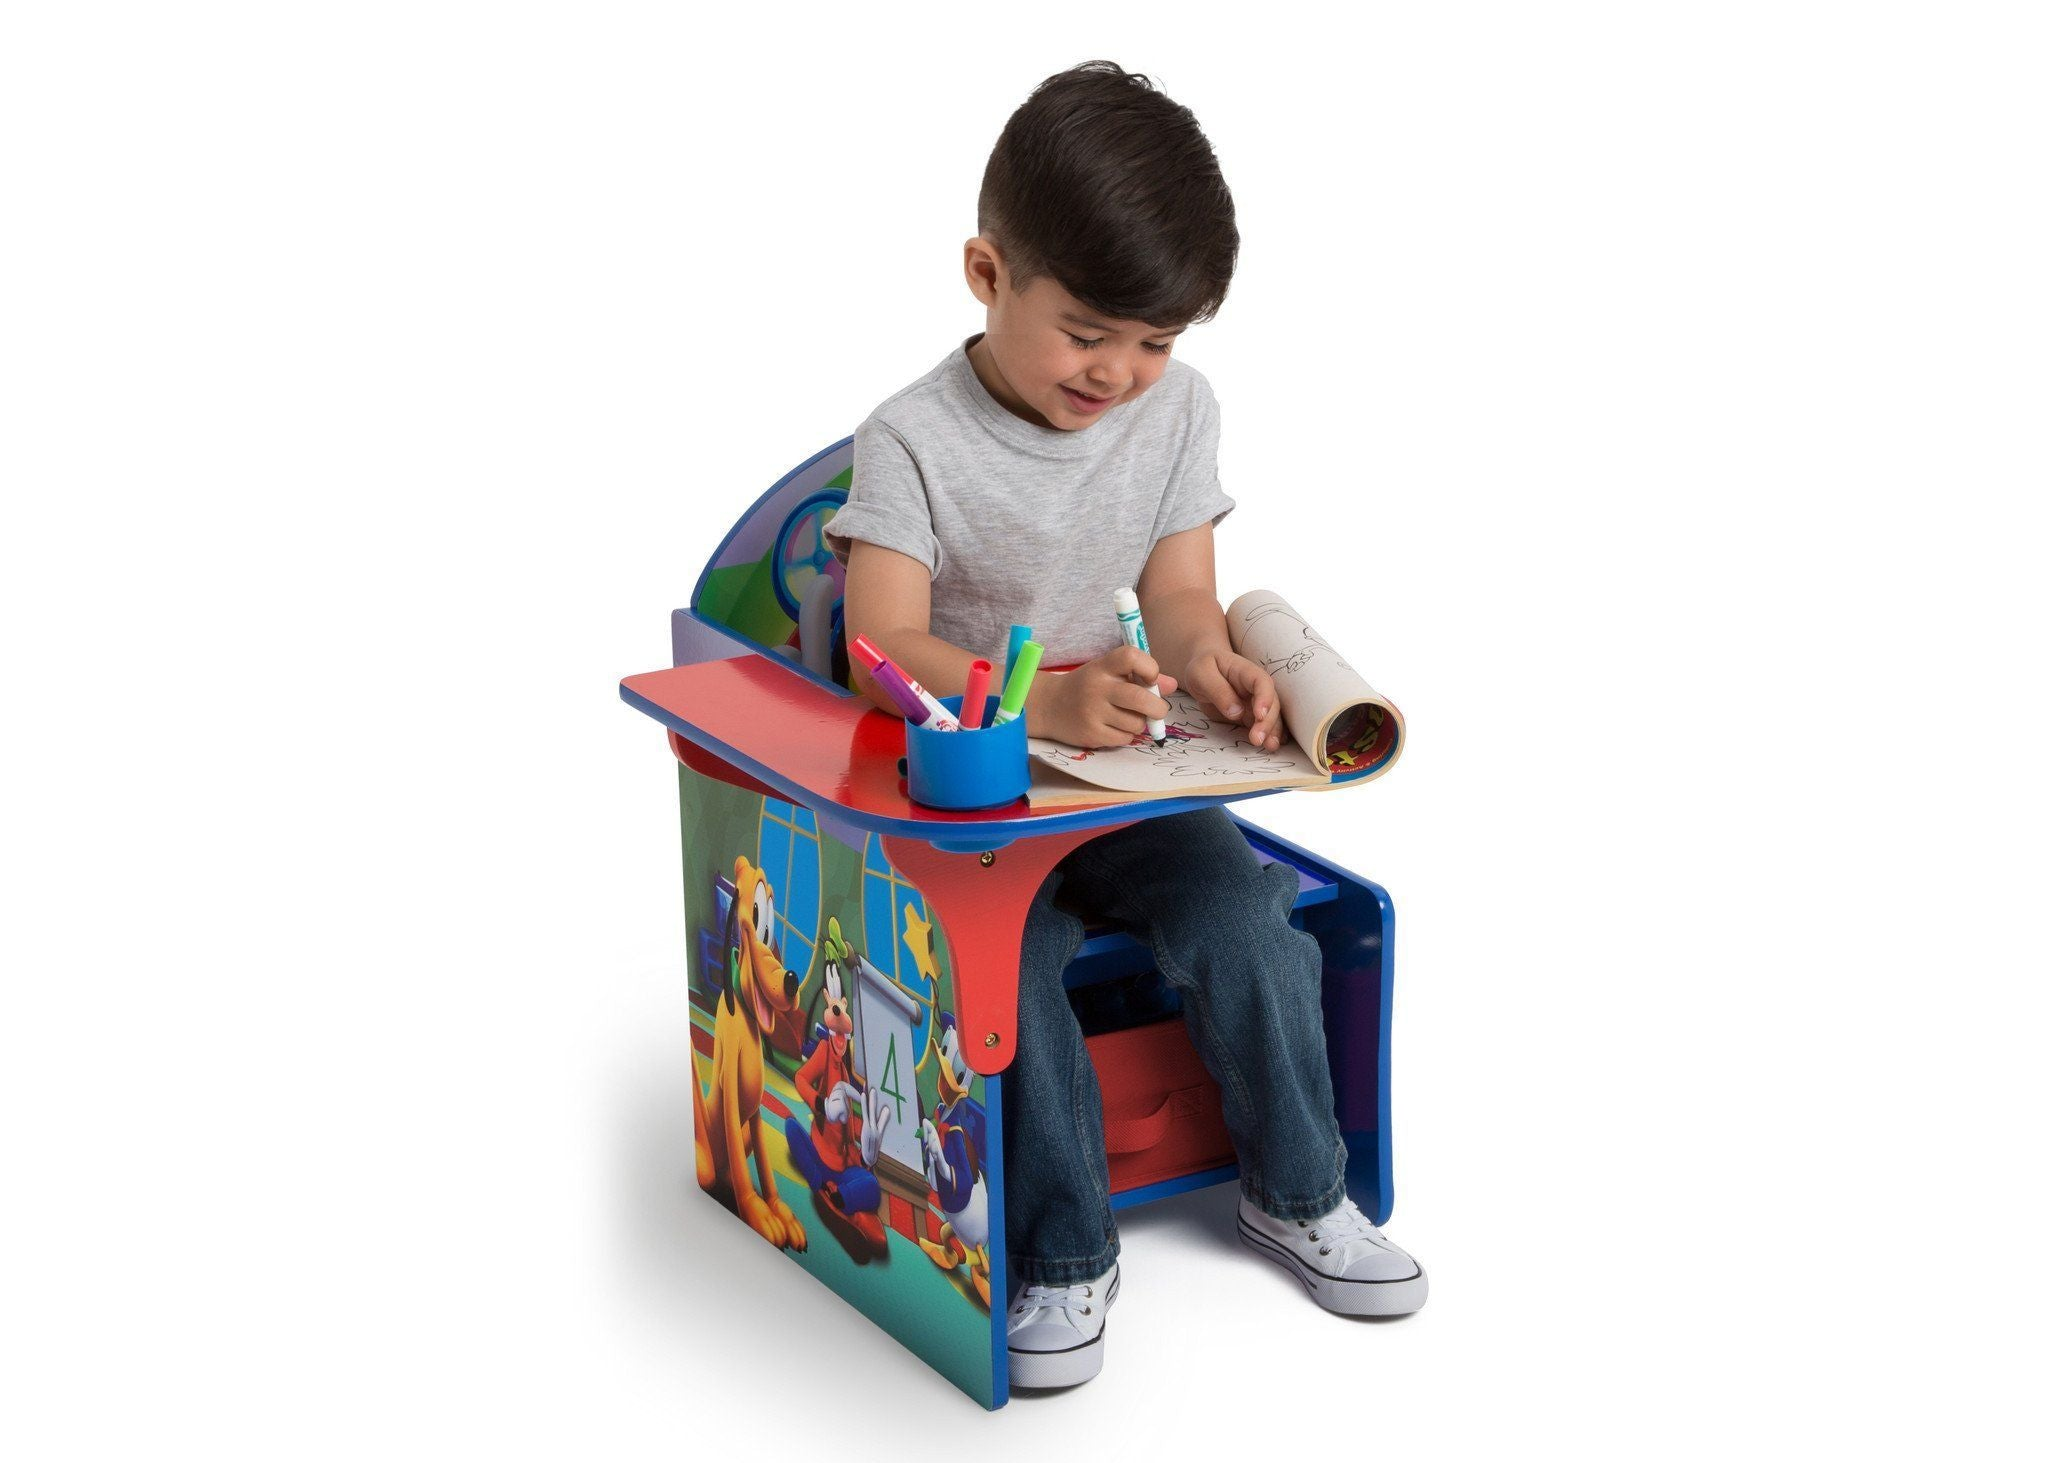 ... Delta Children Mickey Mouse Chair Desk With Storage Bin, Left View With  Model A3a